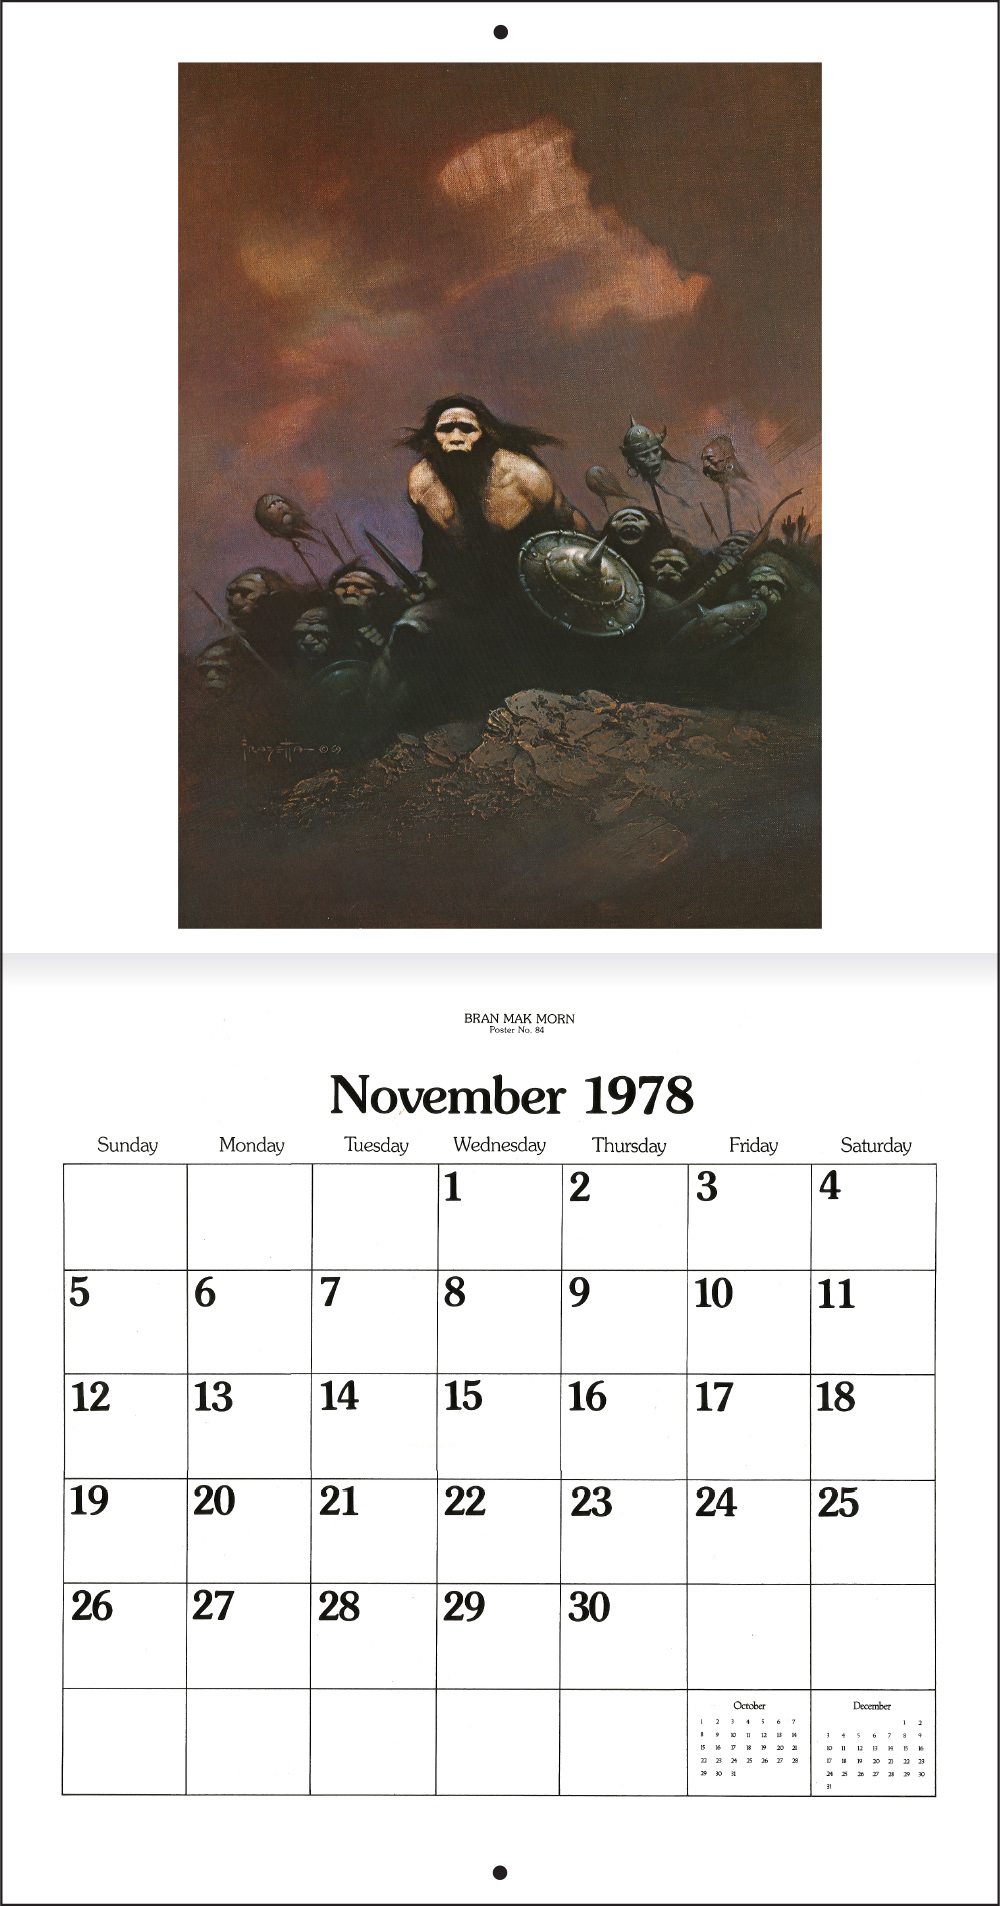 The Frank Frazetta Calendar 1978 Tain T The Meat It S The Humanity